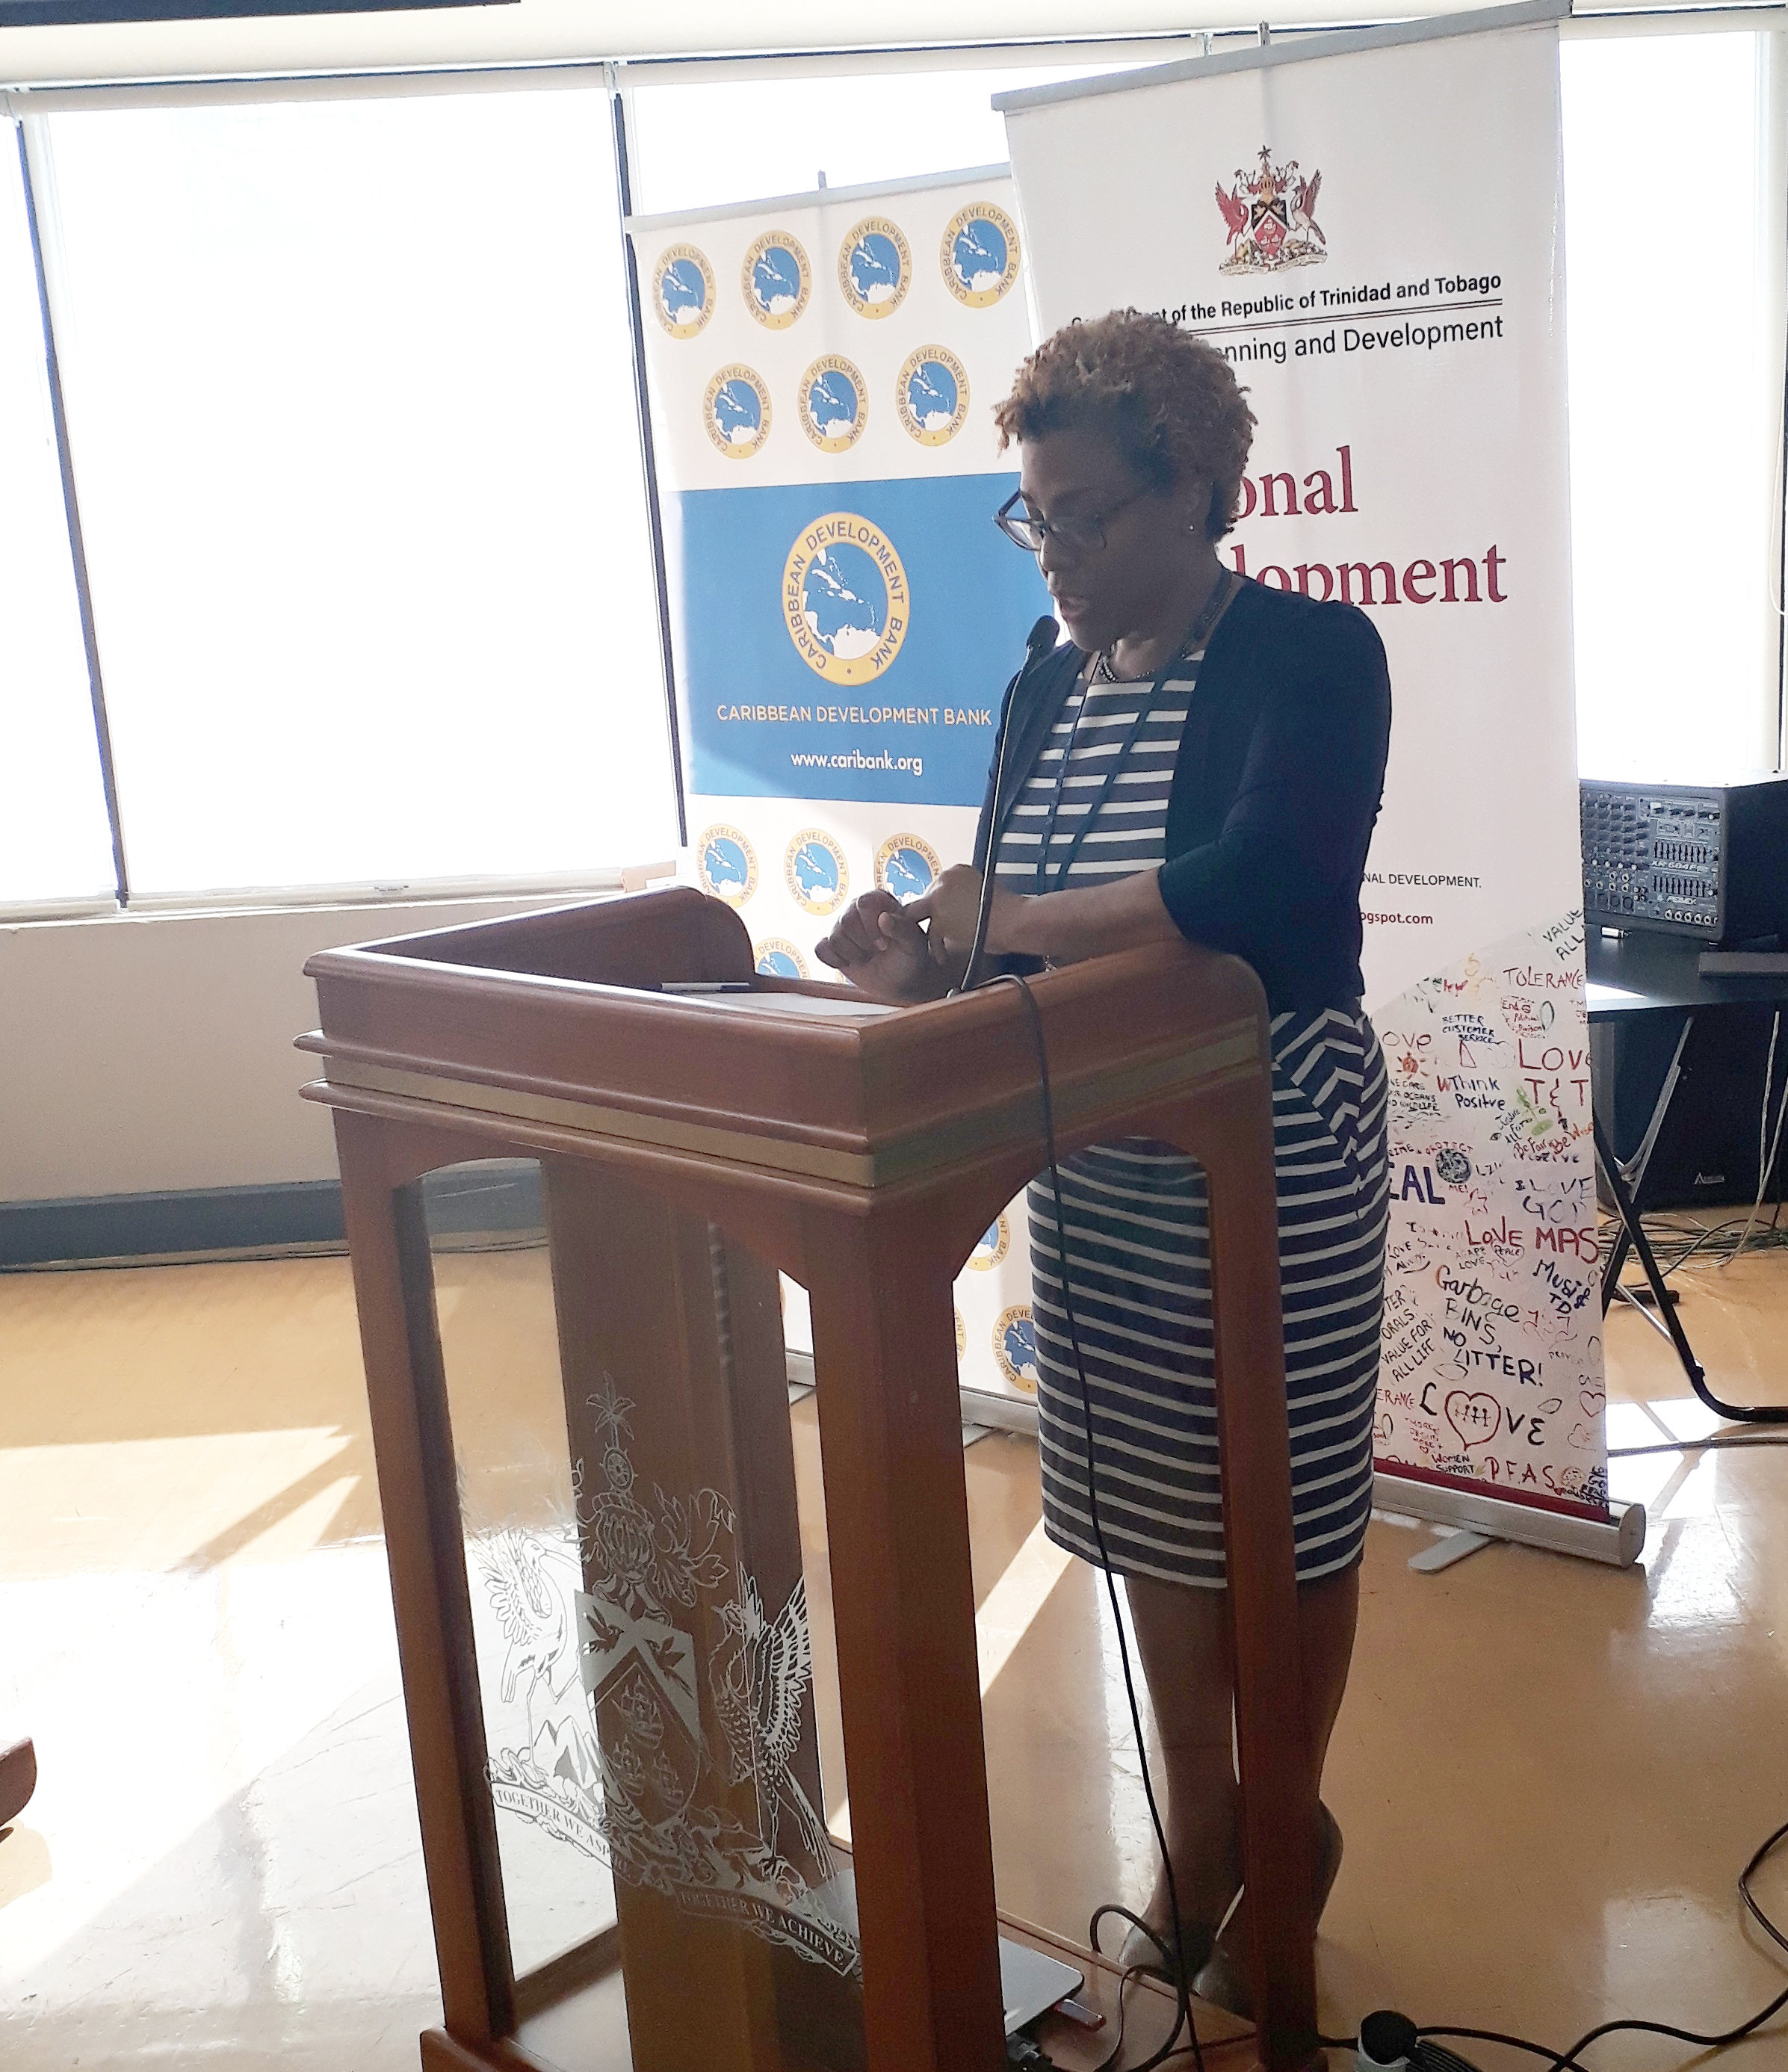 A more efficient public service sector is part of Trinidad and Tobago's Vision 2030, and PPAM/PCM will help to achieve that says Marie Hinds, Deputy Permanent Secretary, Ministry of Planning and Development.